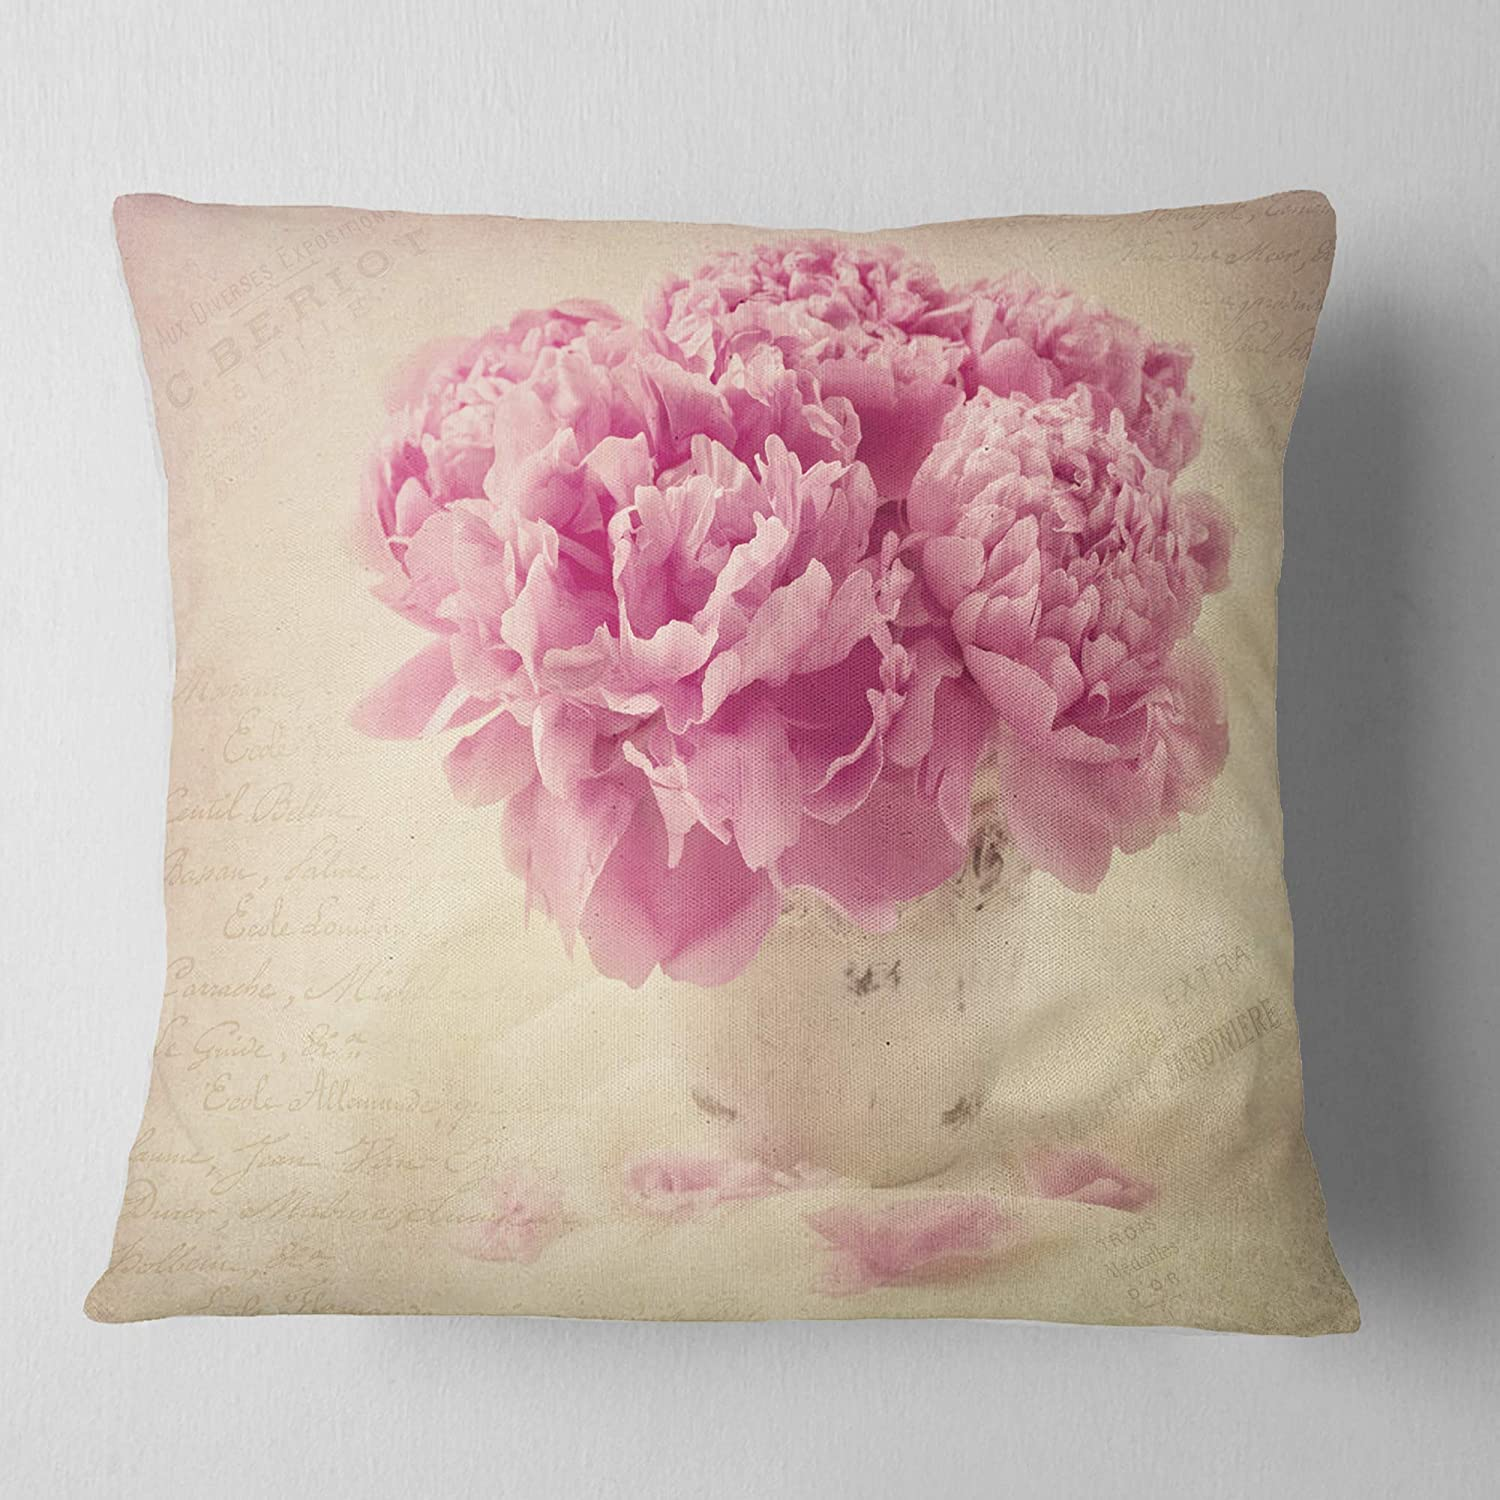 x 26 in in Sofa Throw Pillow 26 in Designart CU14201-26-26 Bunch of Peony Flowers on Table Floral Cushion Cover for Living Room Insert Printed On Both Side